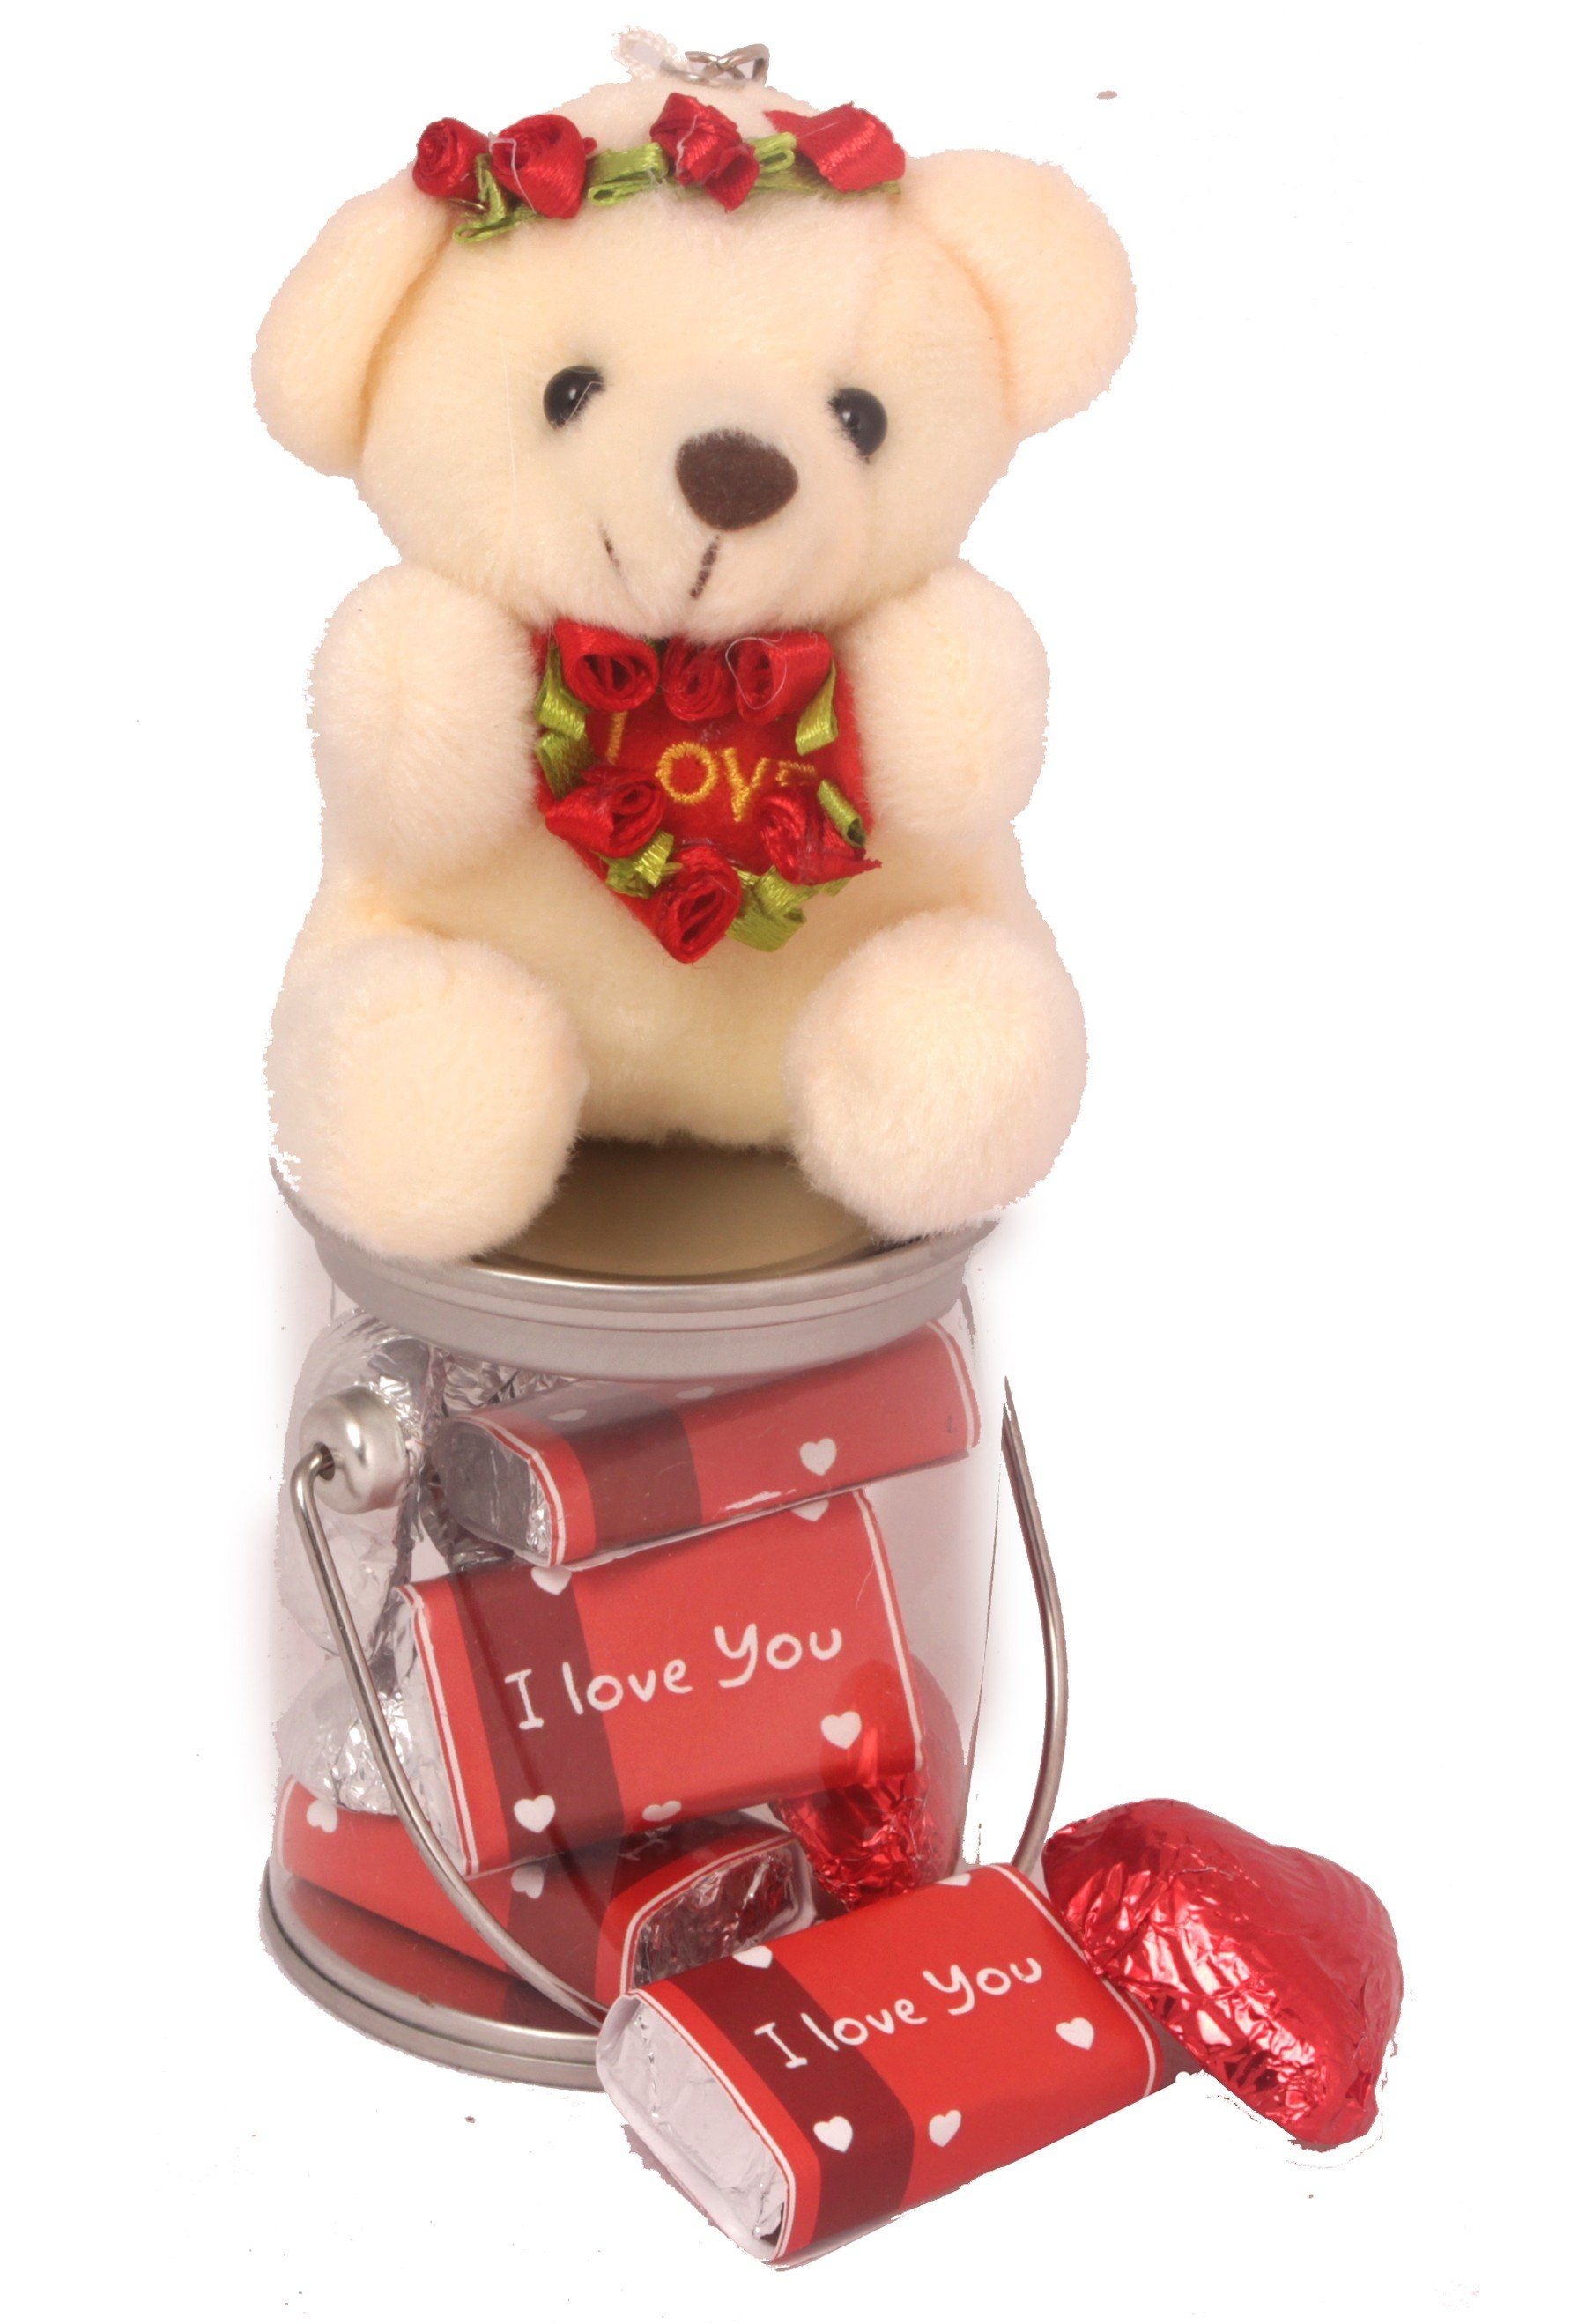 Love bucket with teddy and chocolates saying i love you